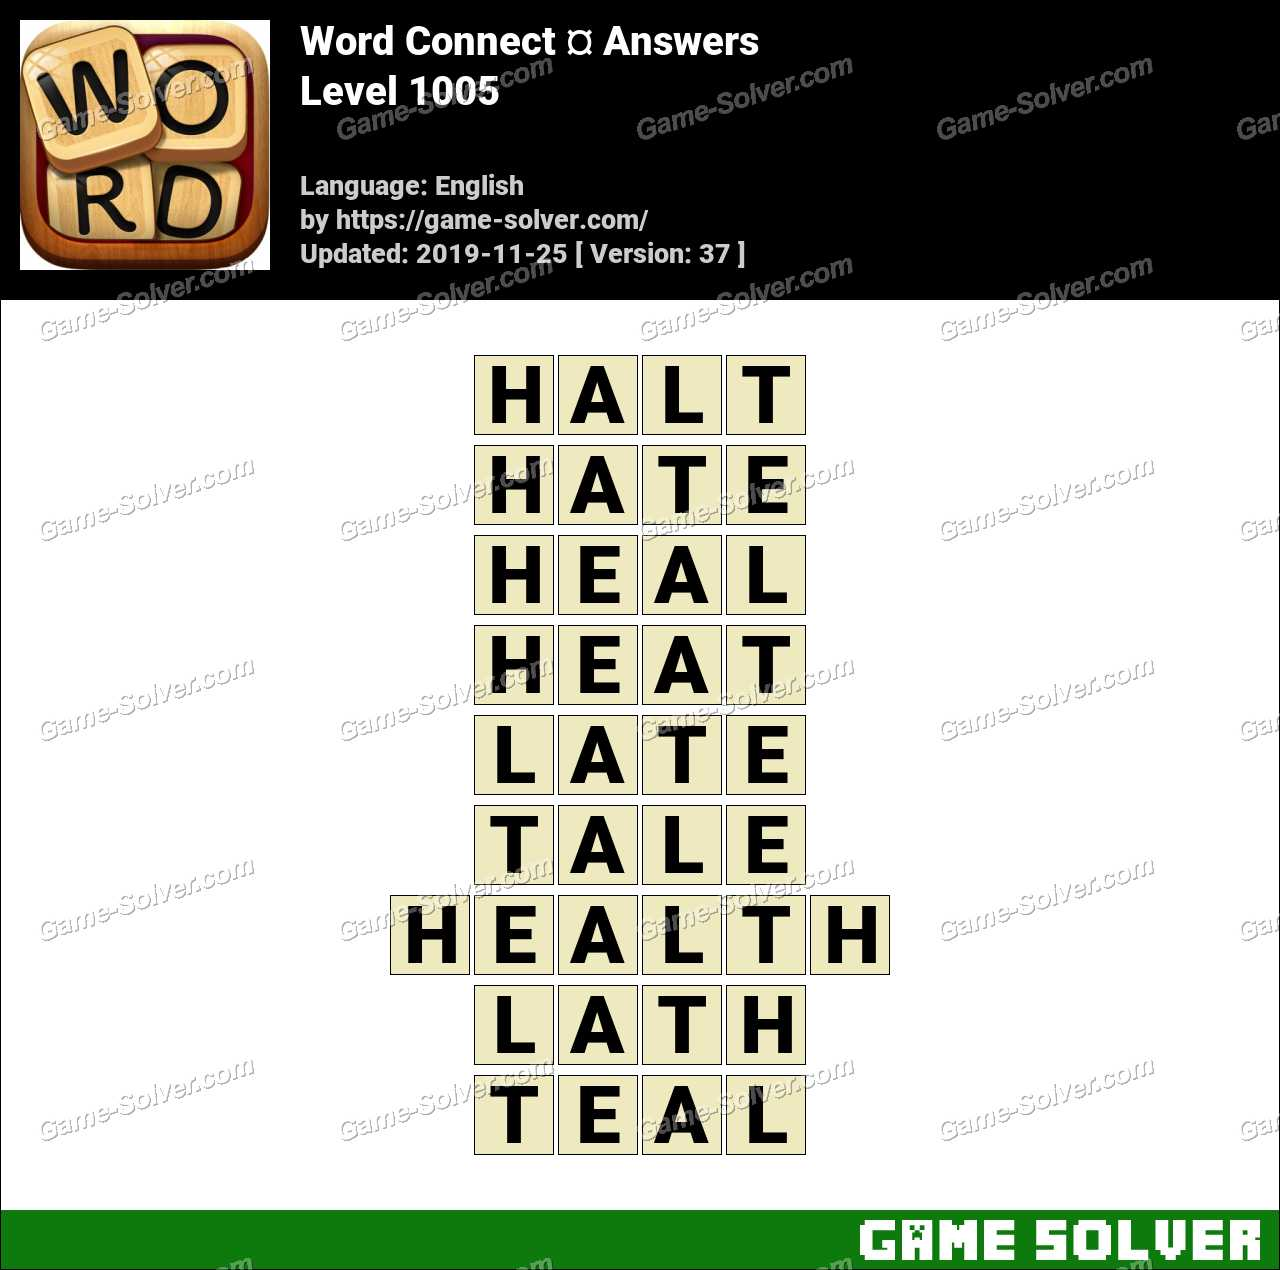 Word Connect Level 1005 Answers